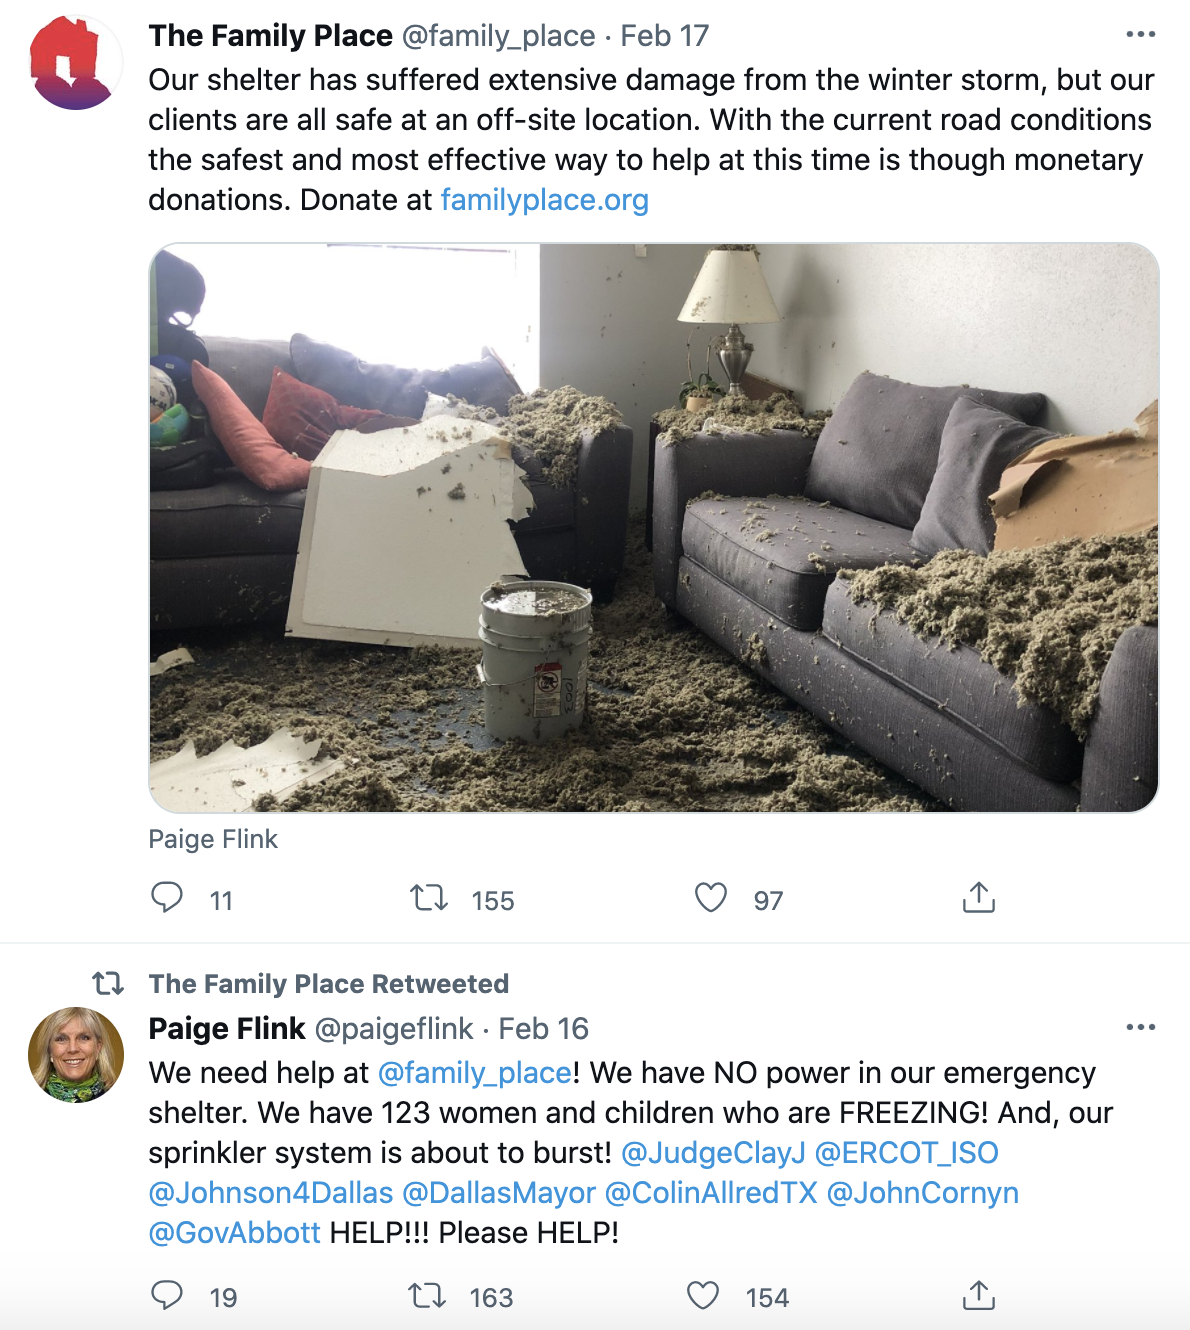 Twitter thread about The Family Place's storm damage.